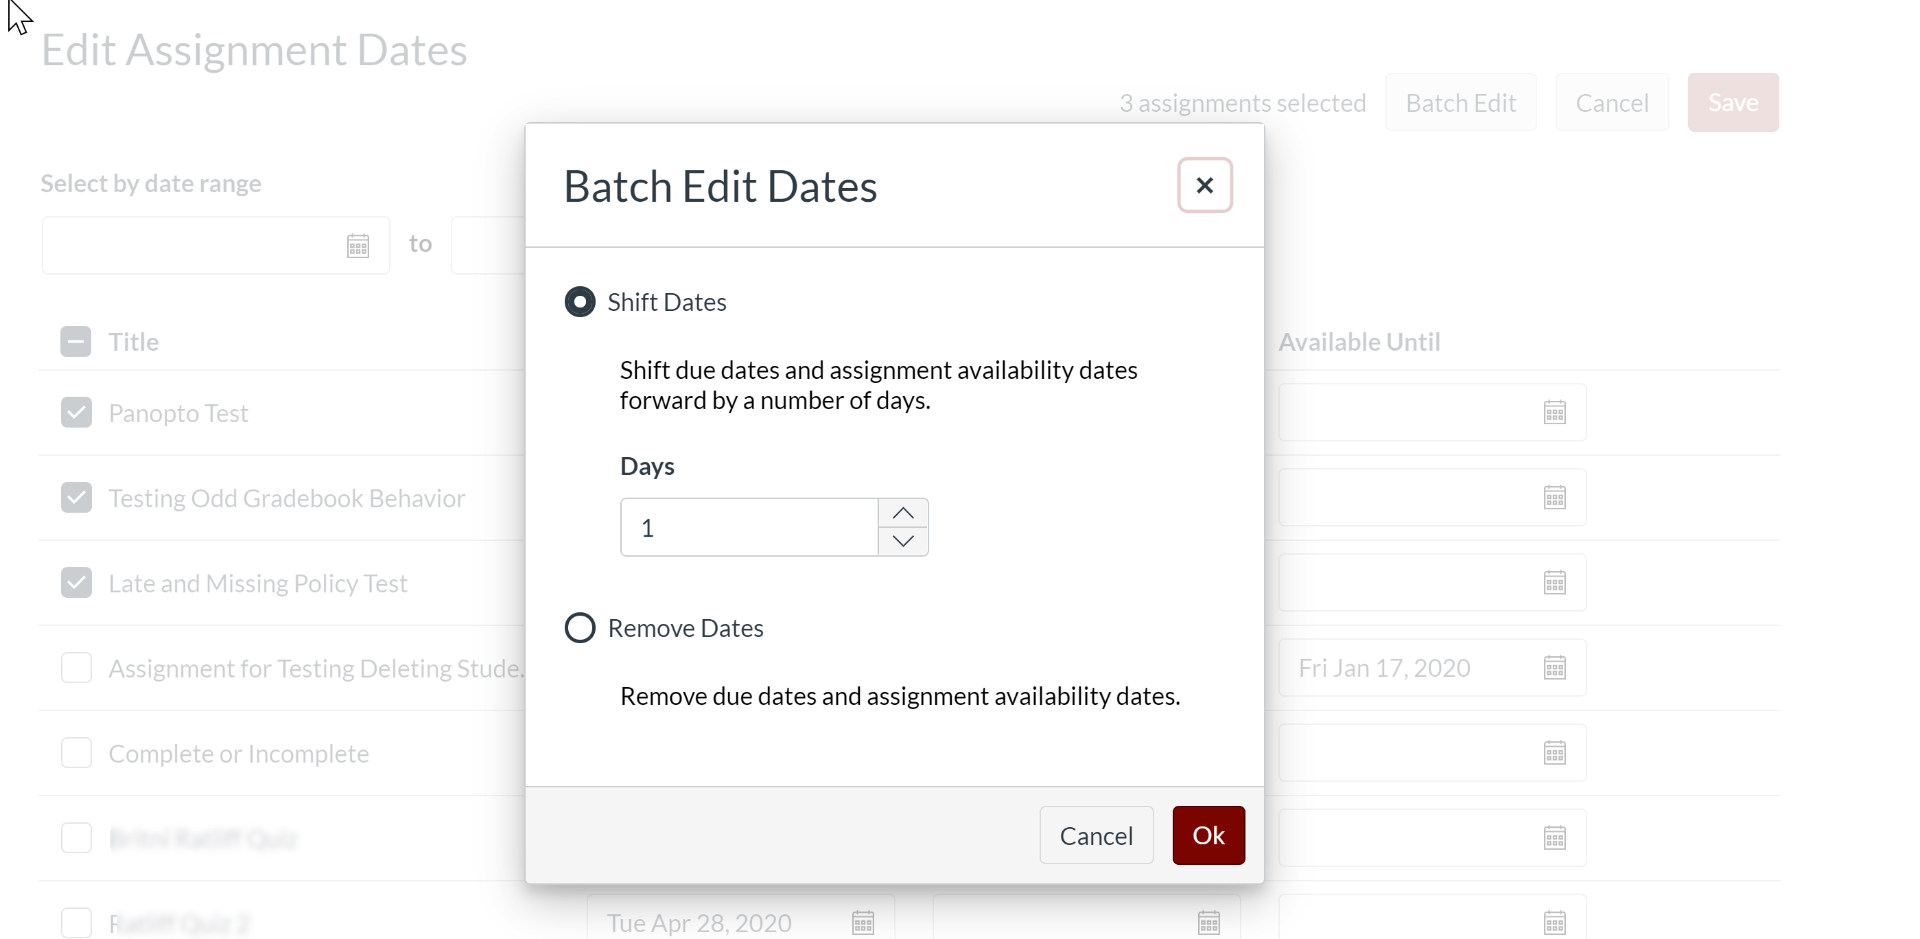 Batche Edit Dates dialog box